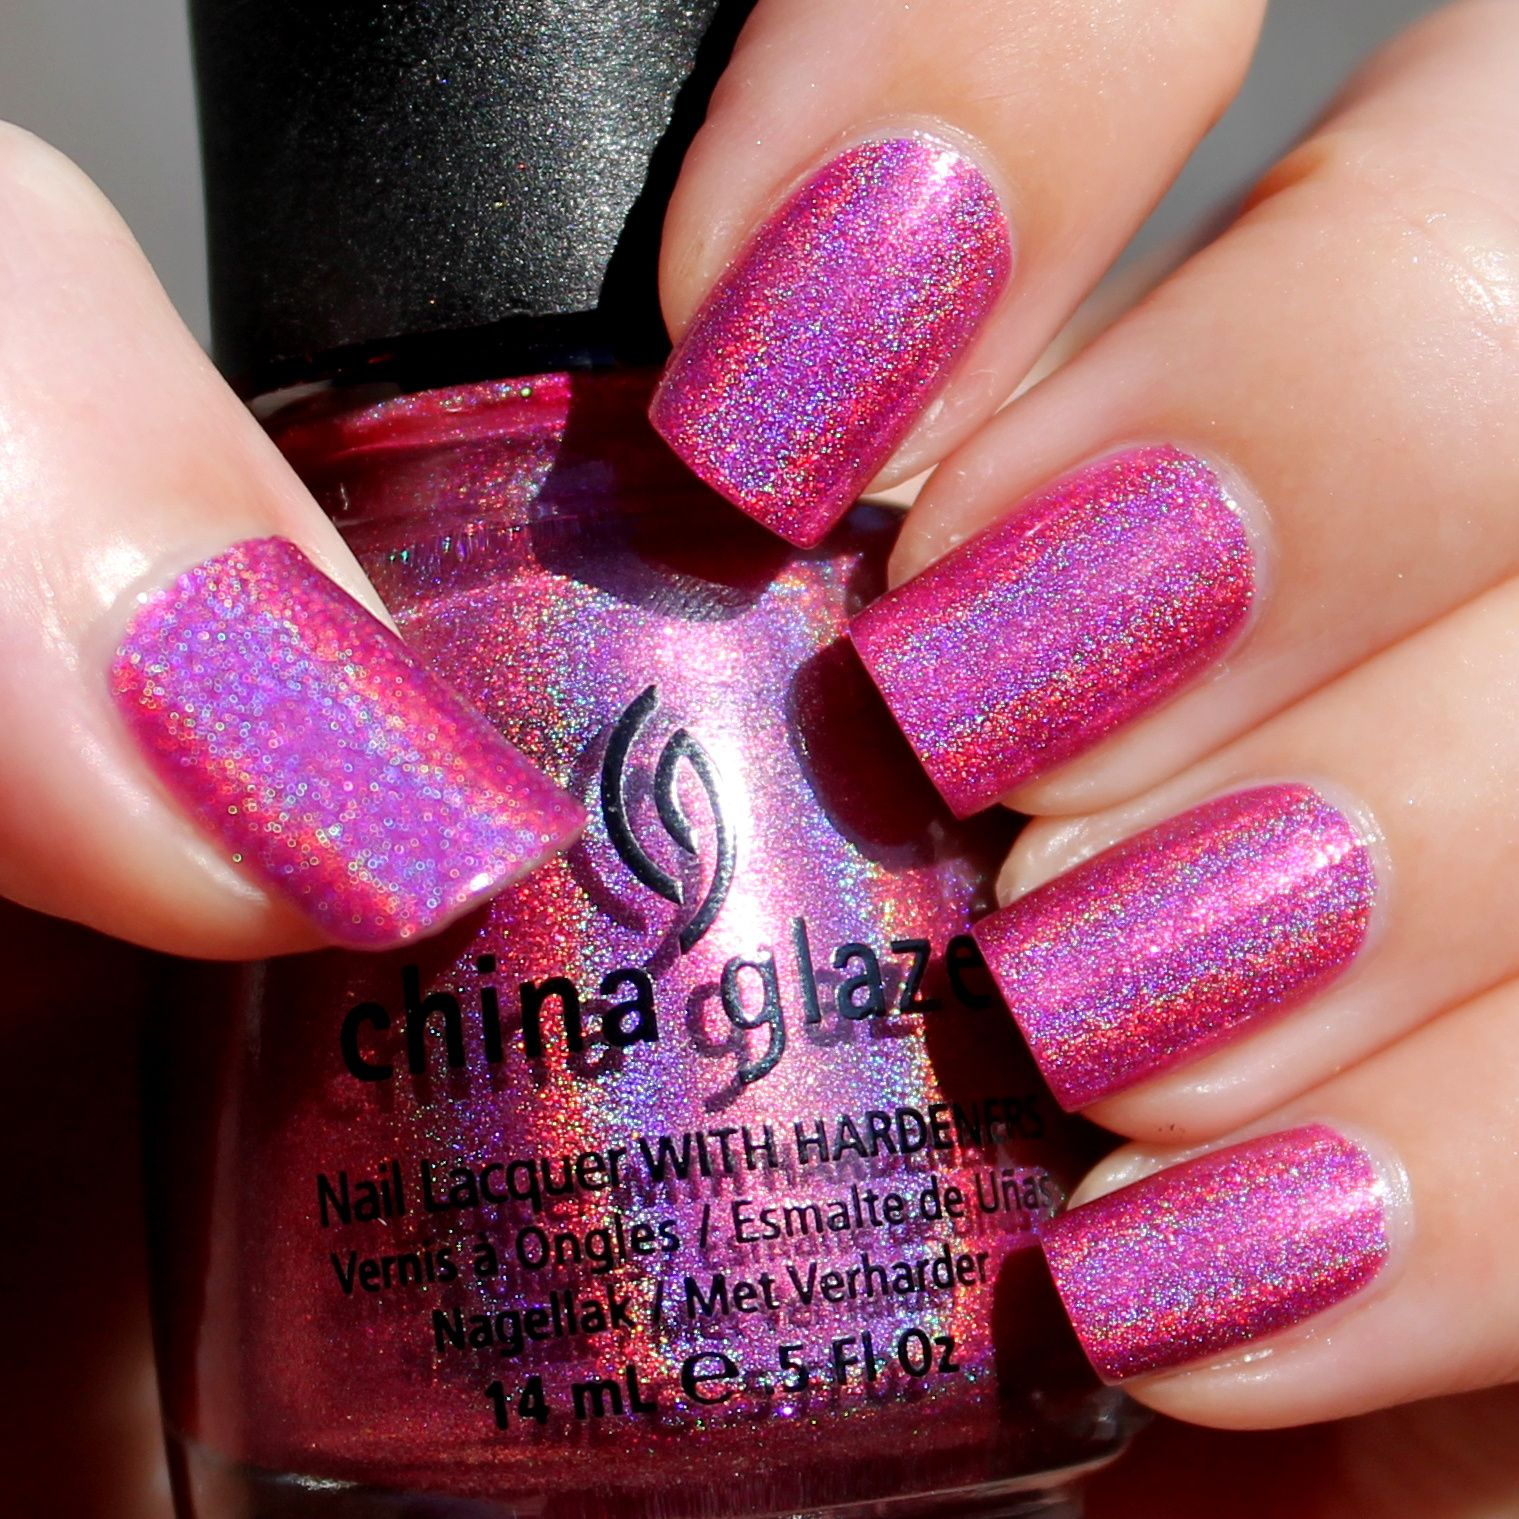 Duri Cosmetics Rejuvacote  / Revlon Quick dry base coat / China Glaze Franken Polish 108 Degrees Holographic / Poshe Top Coat